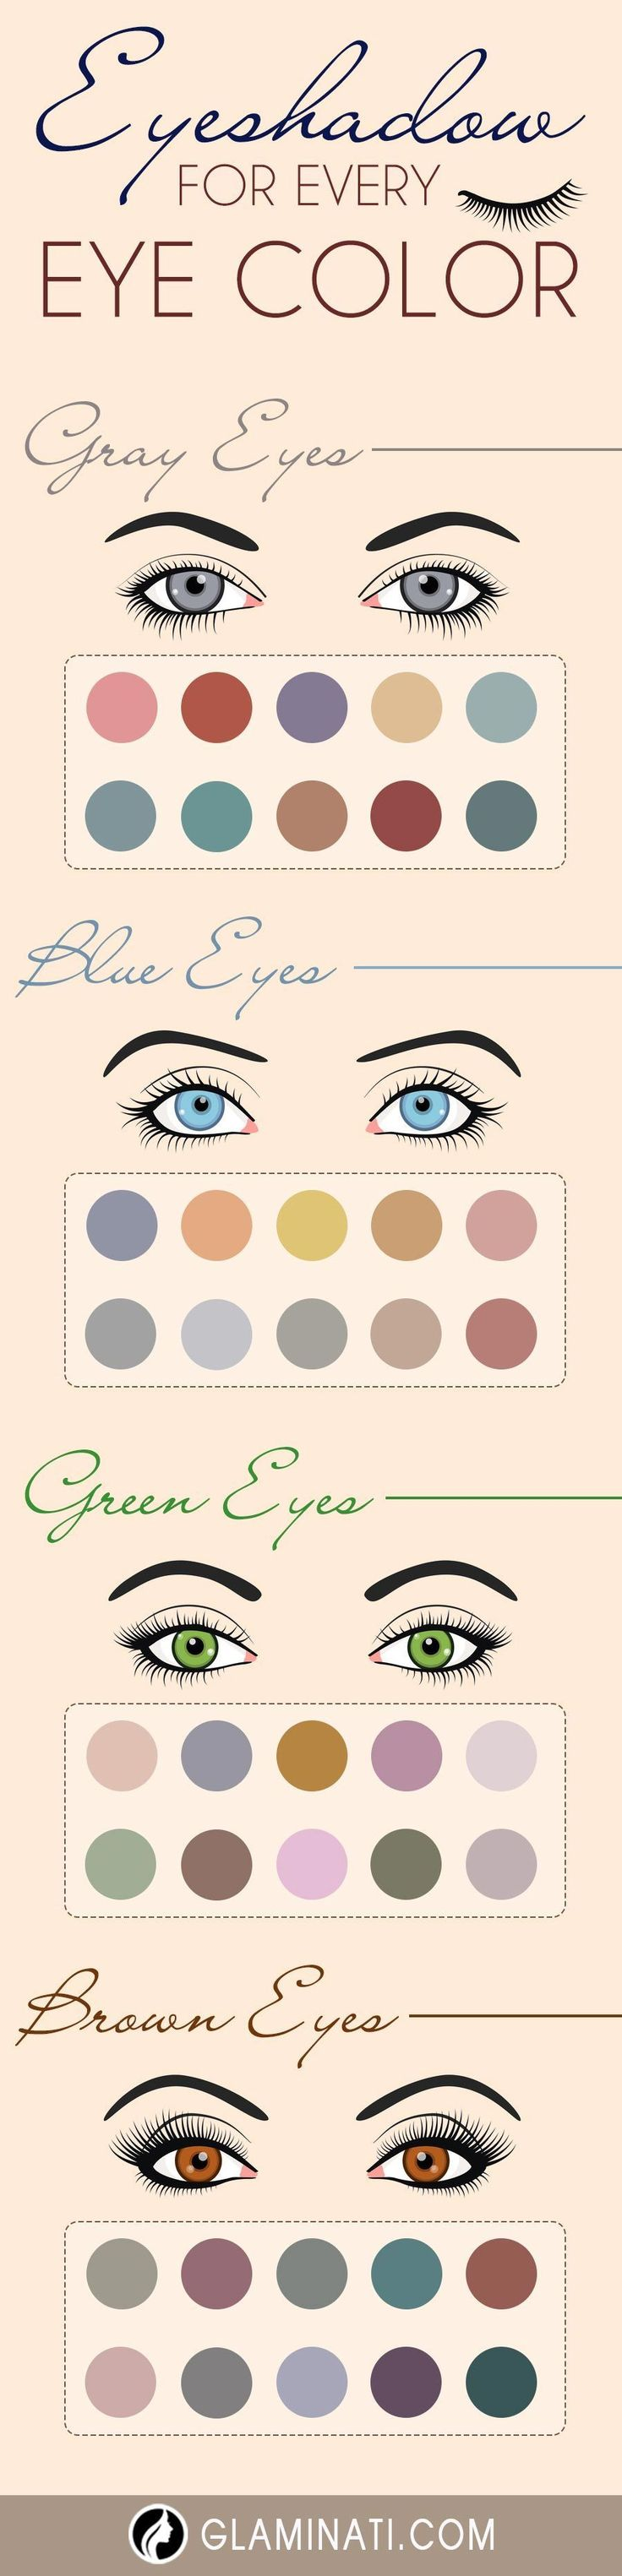 Most Magical Makeup Ideas for Gray Eyes ☆ See more glaminati